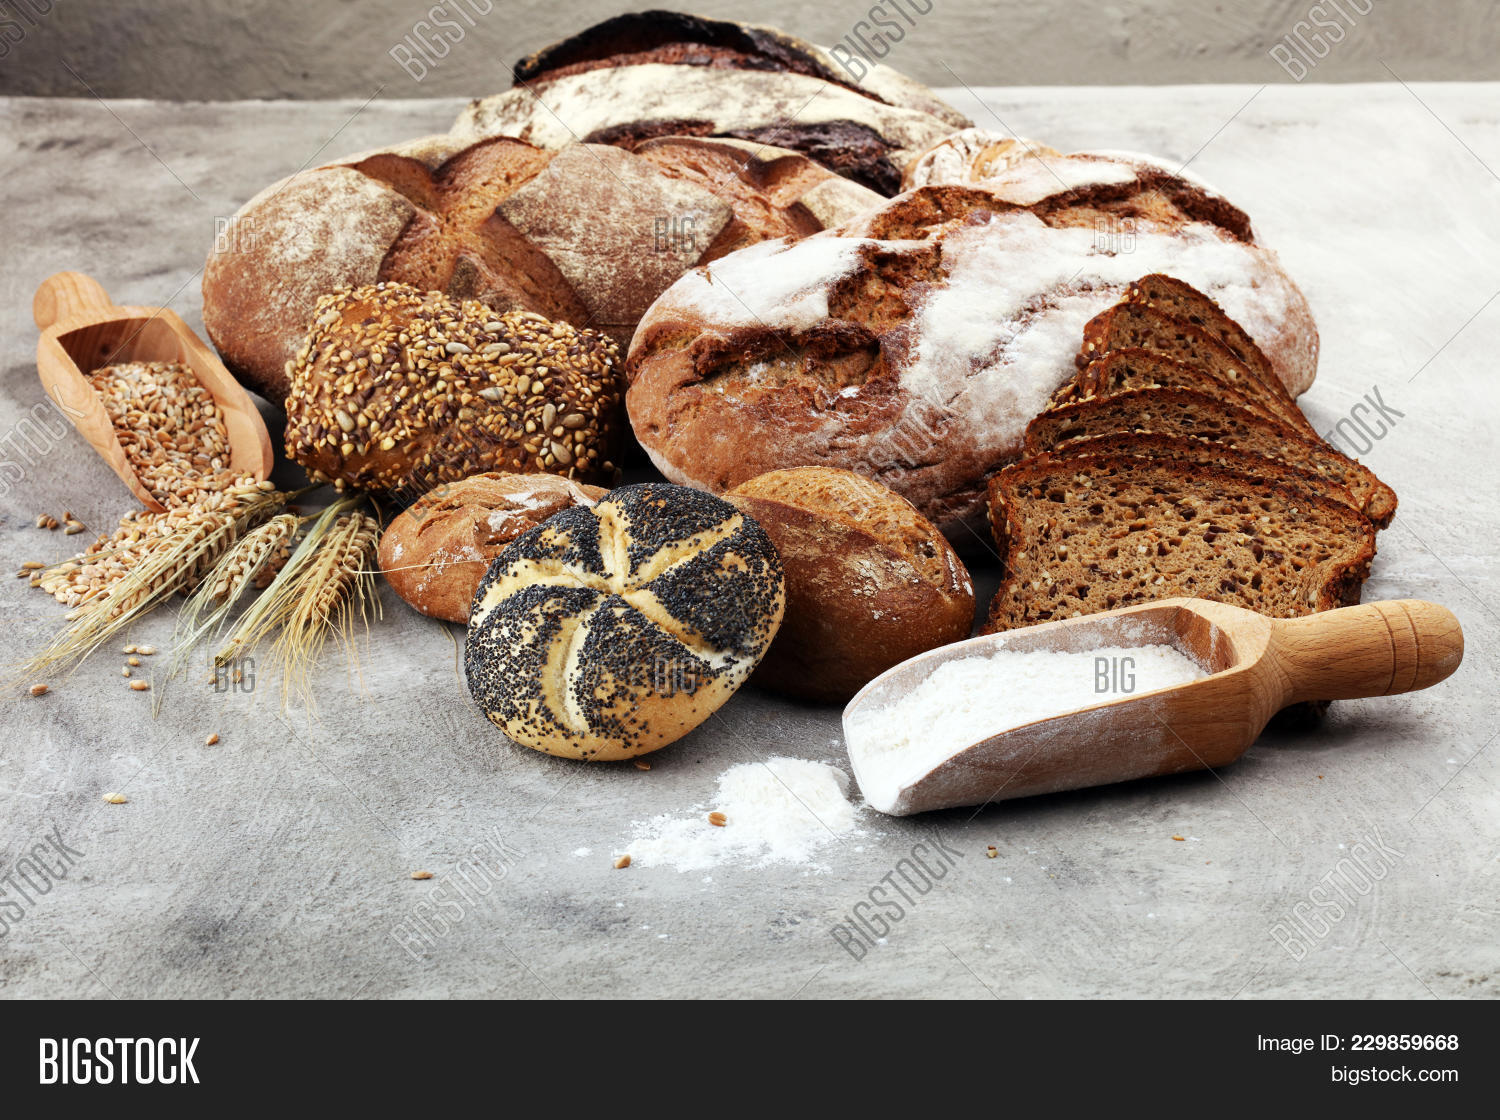 Different kinds of bread powerpoint template different kinds of p toneelgroepblik Image collections